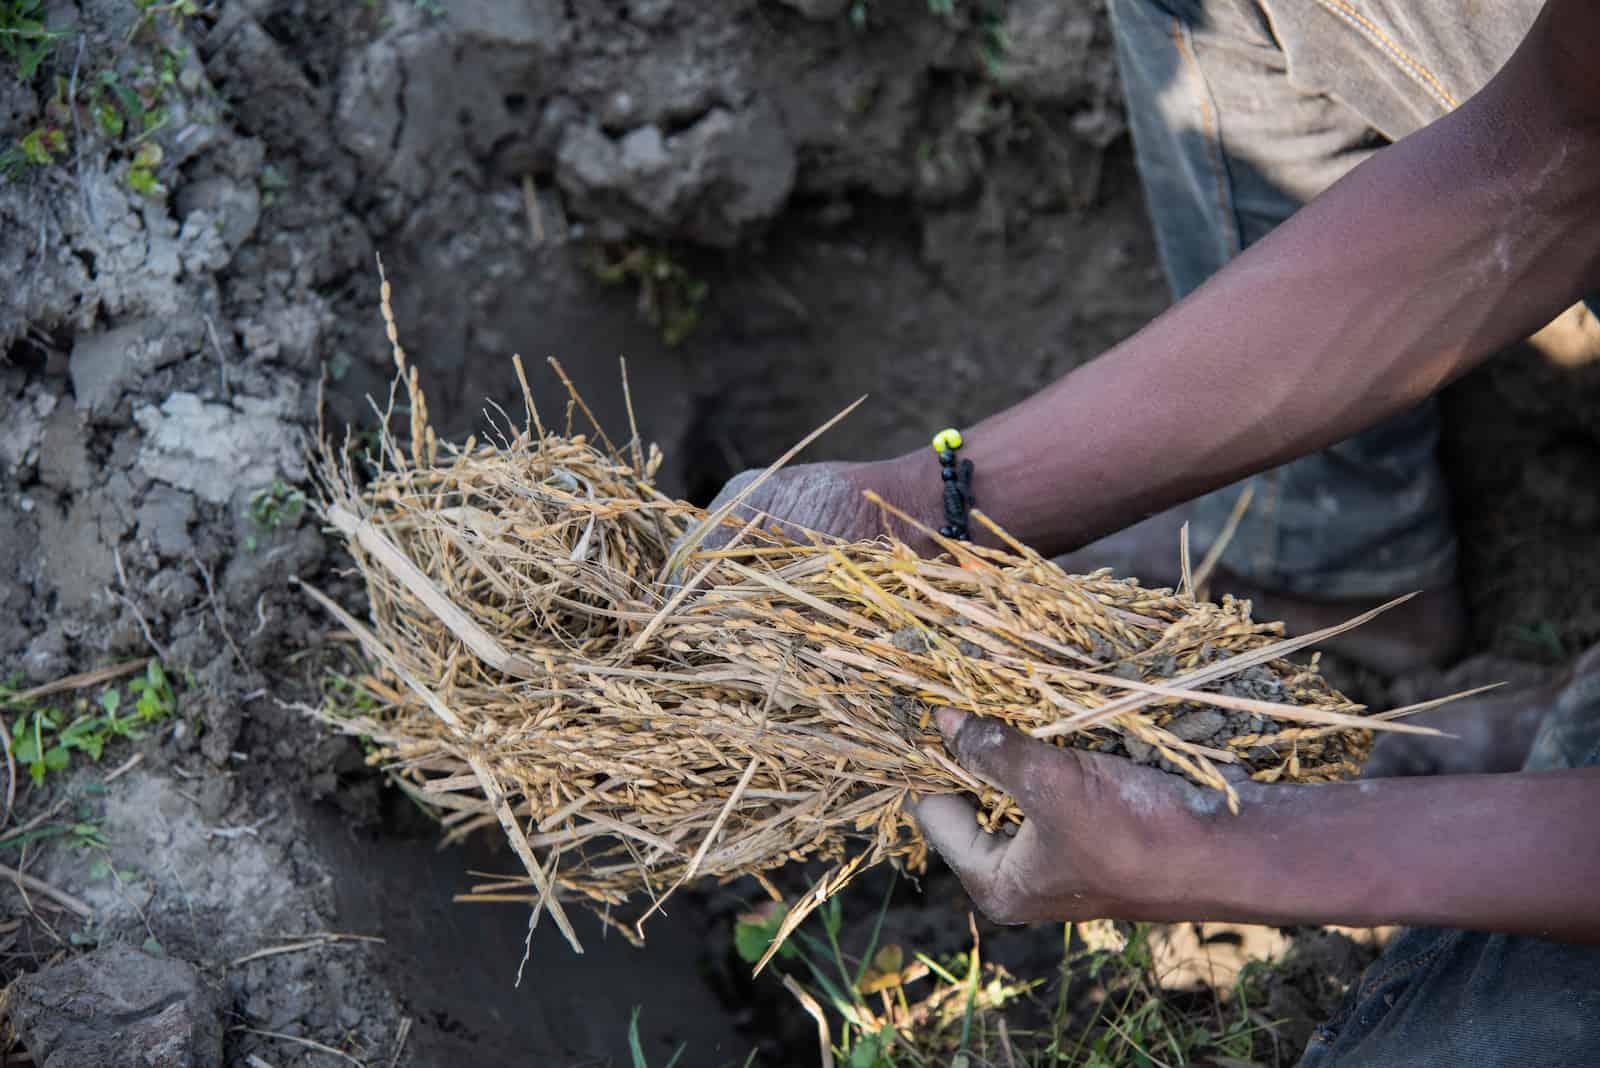 The hands of a man holds a bunch of rice stalks over a dirt hole in the ground.